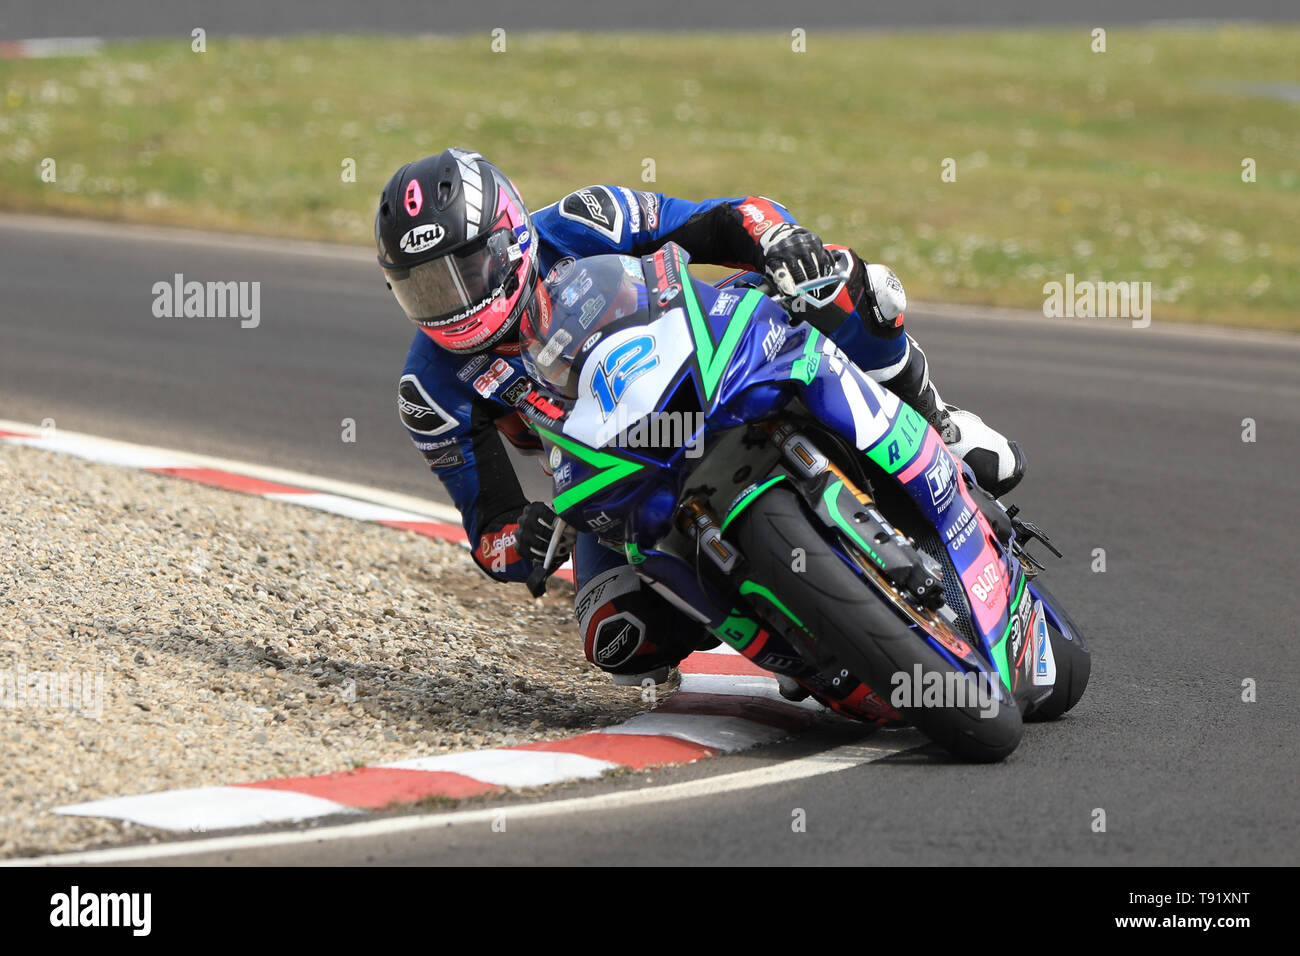 Portrush, Northern Ireland. 16th May, 2019. International North West 200 Motorcycle road racing, Thursday practice and evening racing; Paul Jordan on the Logan Racing Yamaha during the SuperSport qualifying session Credit: Action Plus Sports/Alamy Live News - Stock Image